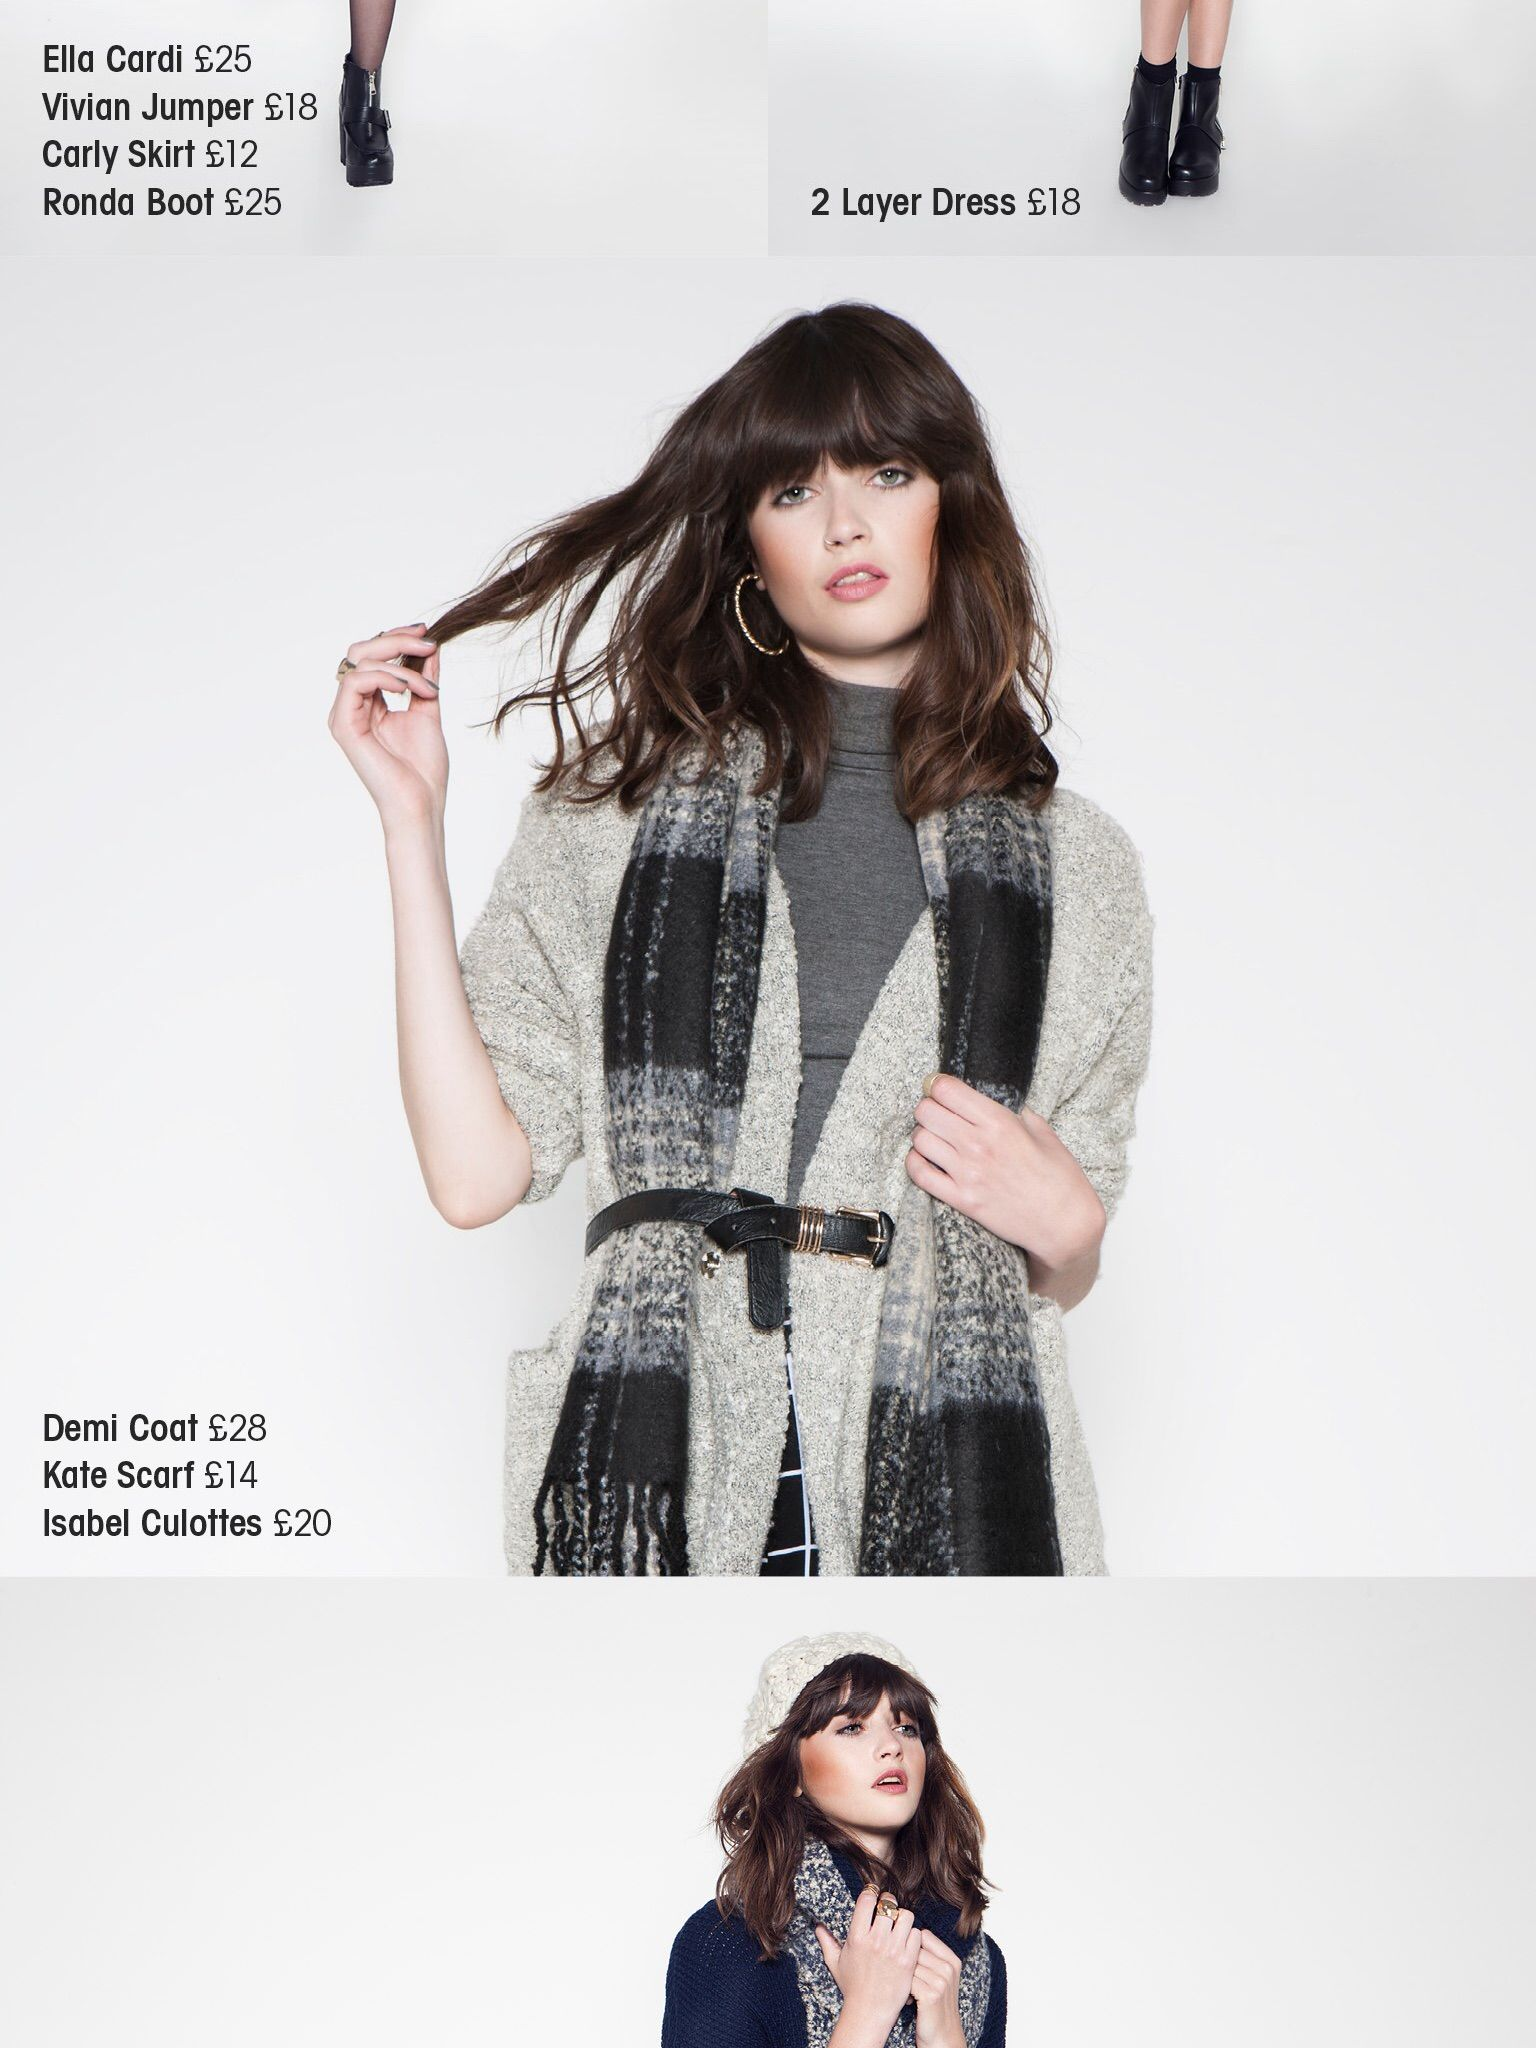 Knitwear from Stylefix Issue 33, http://itunes.apple.com/app/id687702960